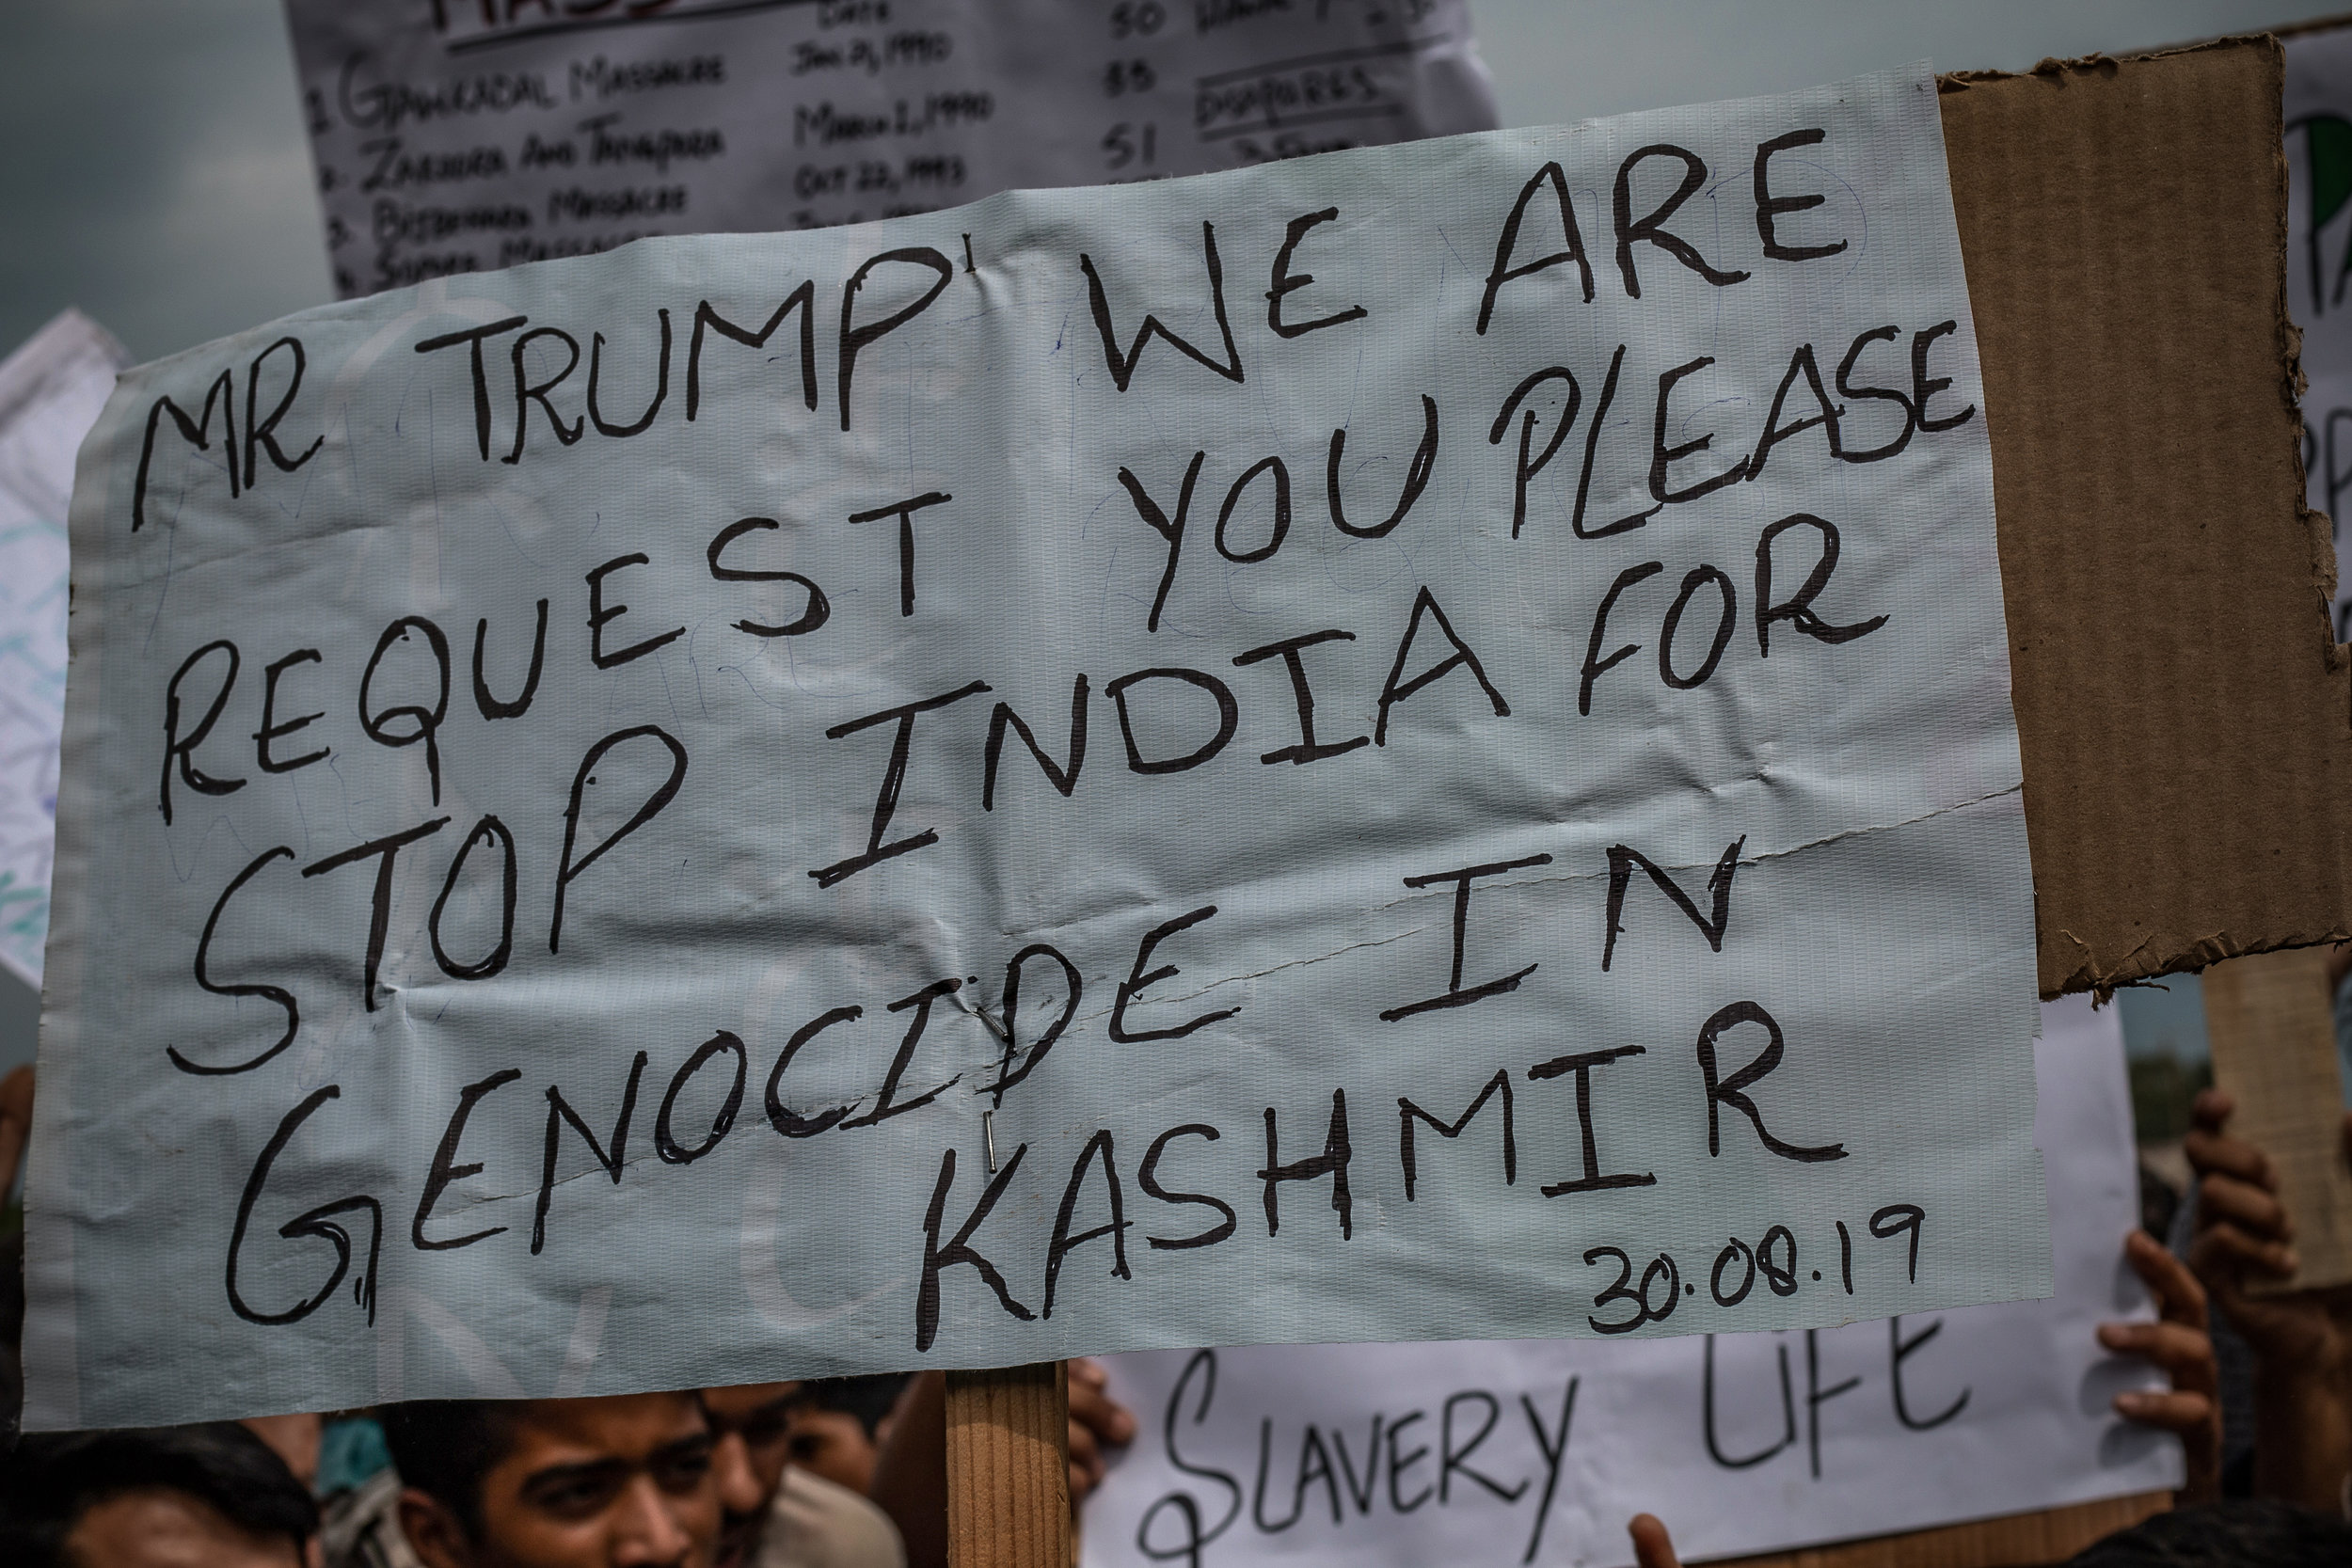 The protestors also requested the American president, Donald Trump, to stop India from committing human rights violations in the region in the name of maintaining law and order. Photo by Avinash Giri.